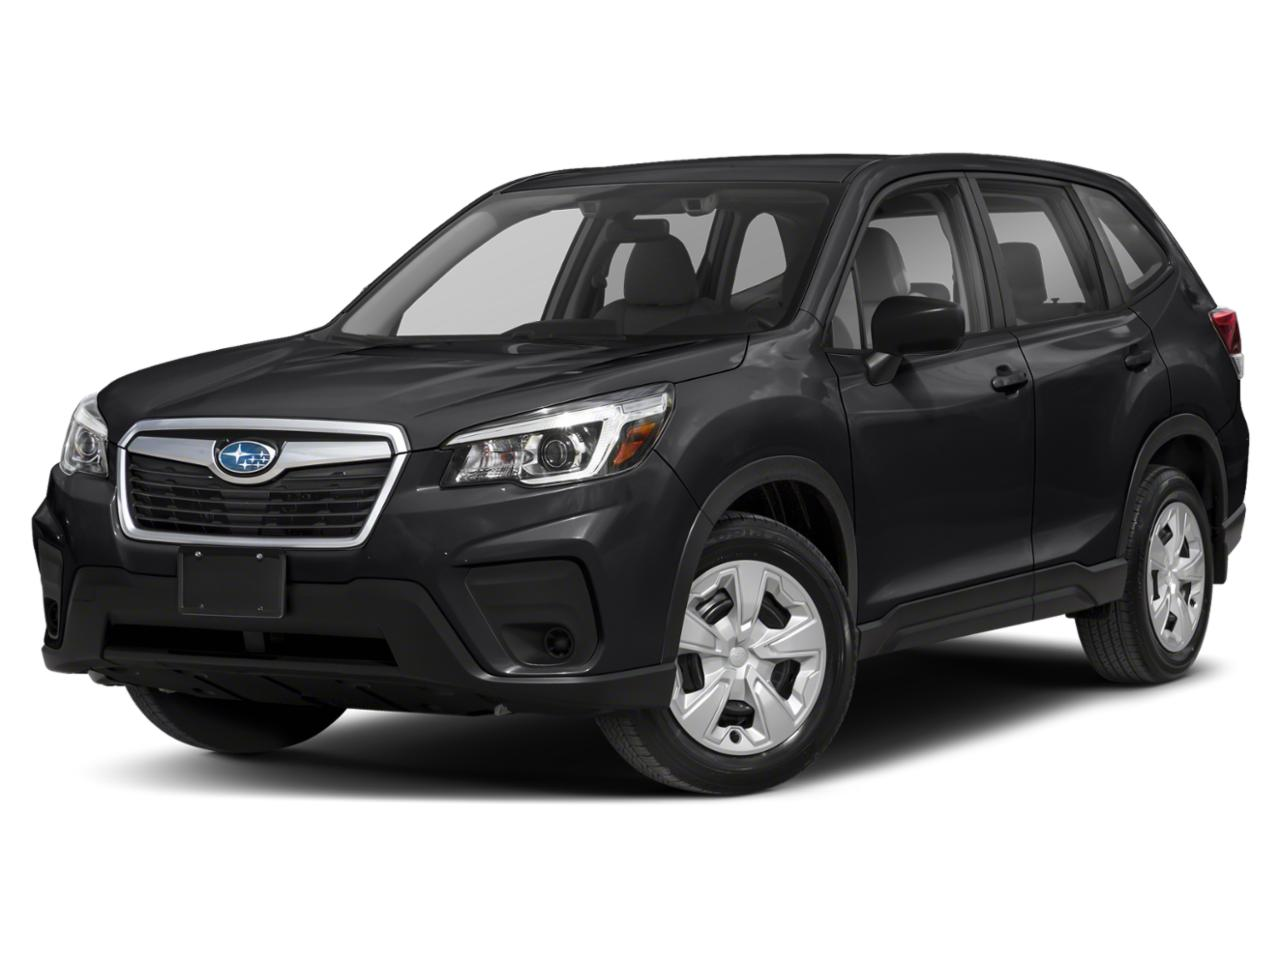 2019 Subaru Forester Vehicle Photo in CAPE MAY COURT HOUSE, NJ 08210-2432